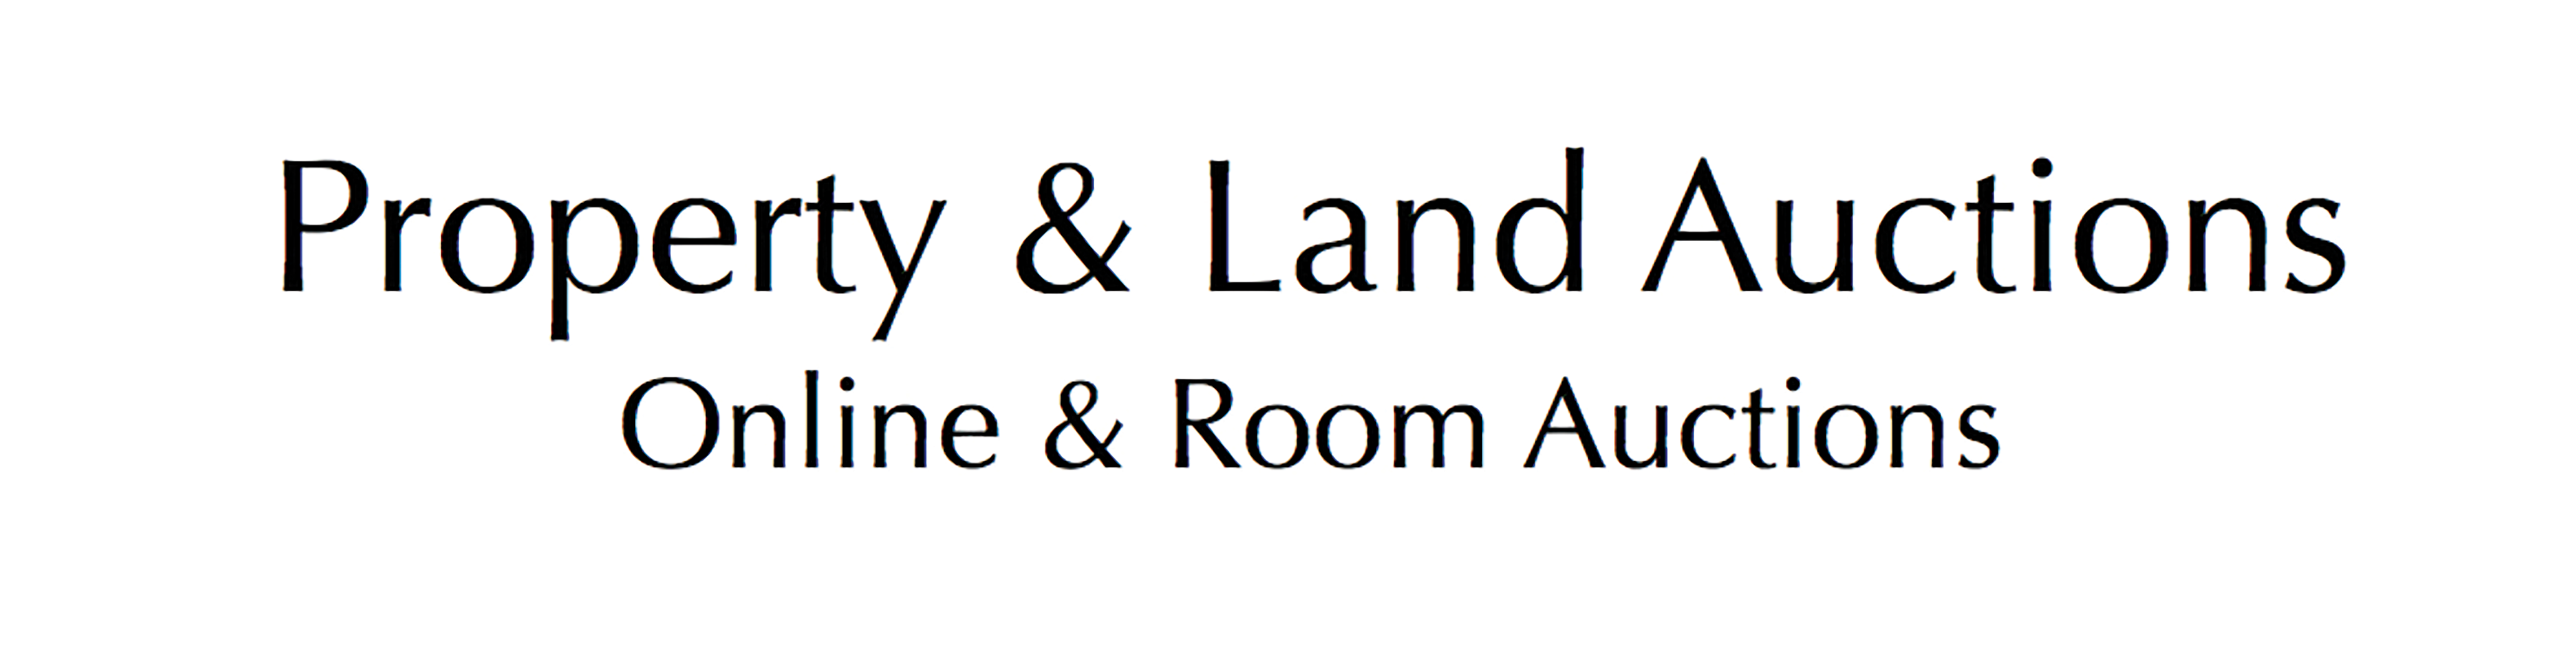 Property and Land Auctions